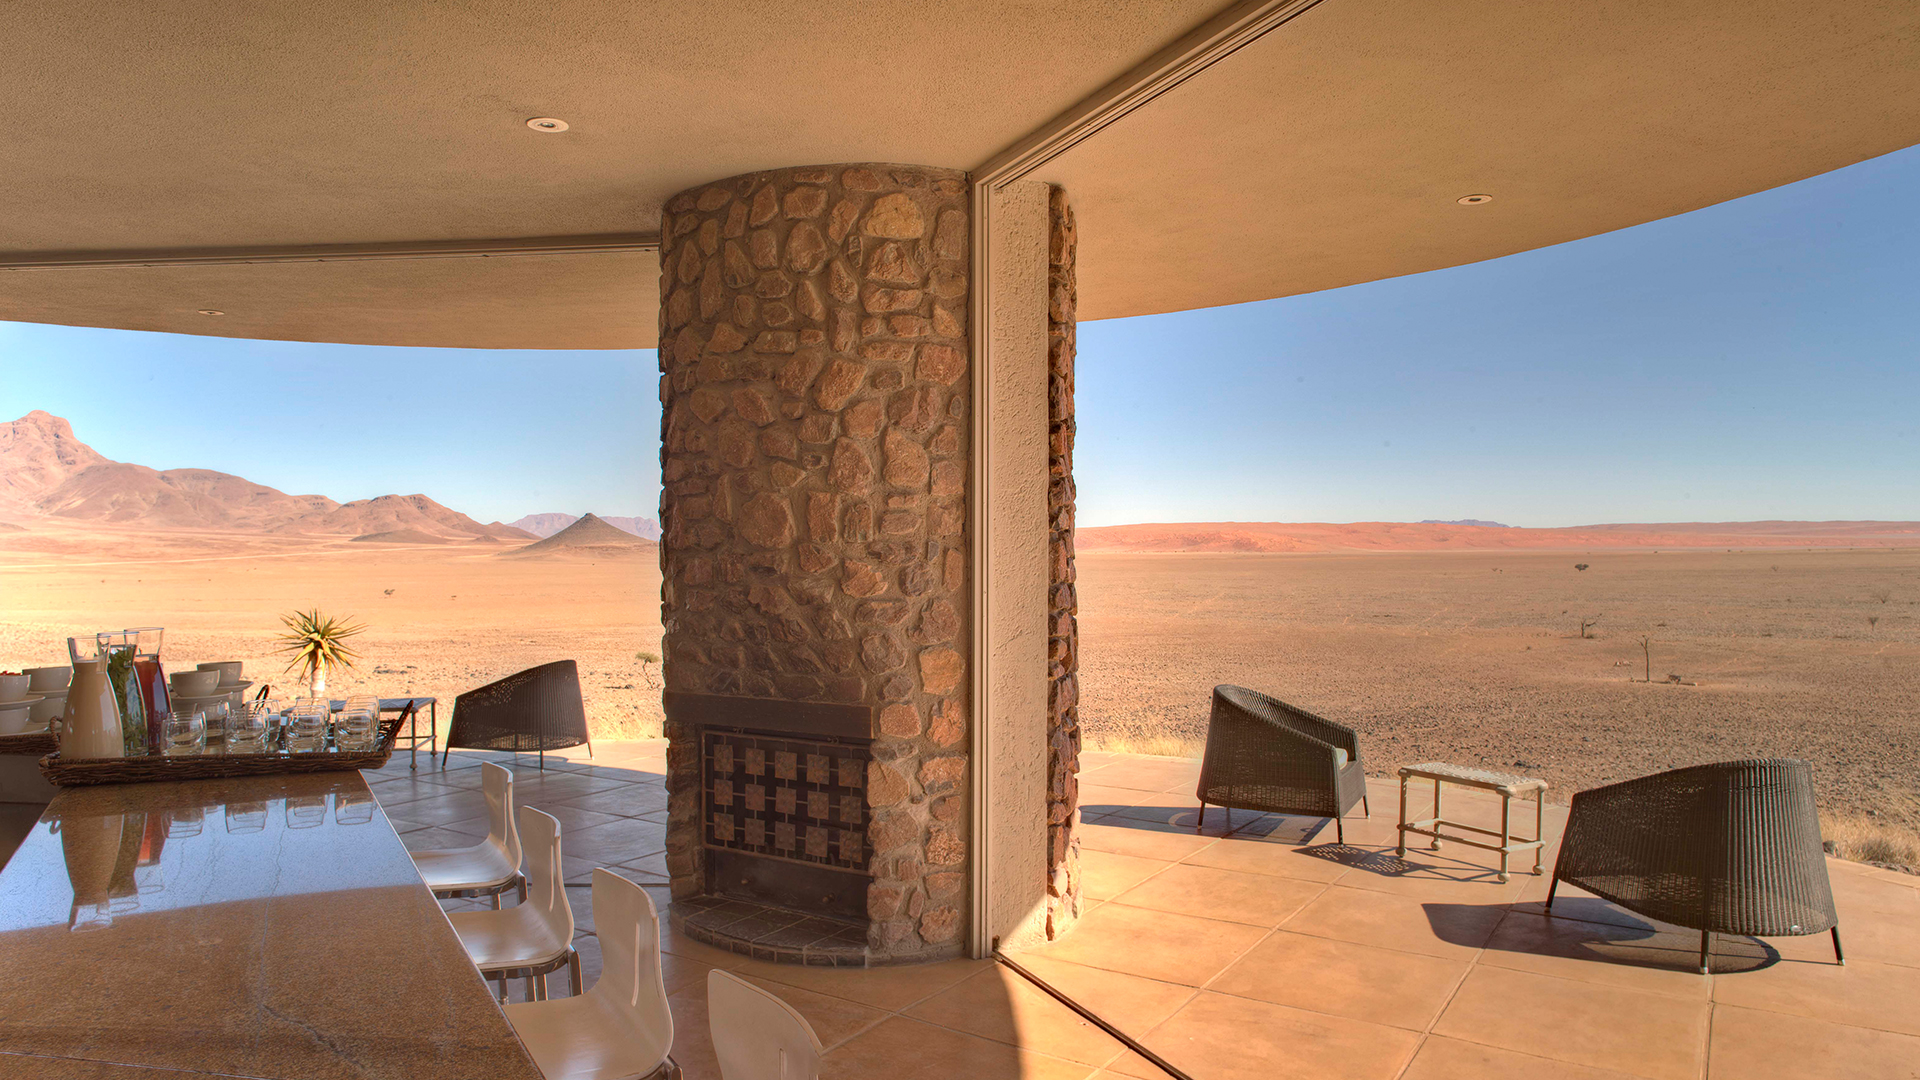 sitting area looking out over desert